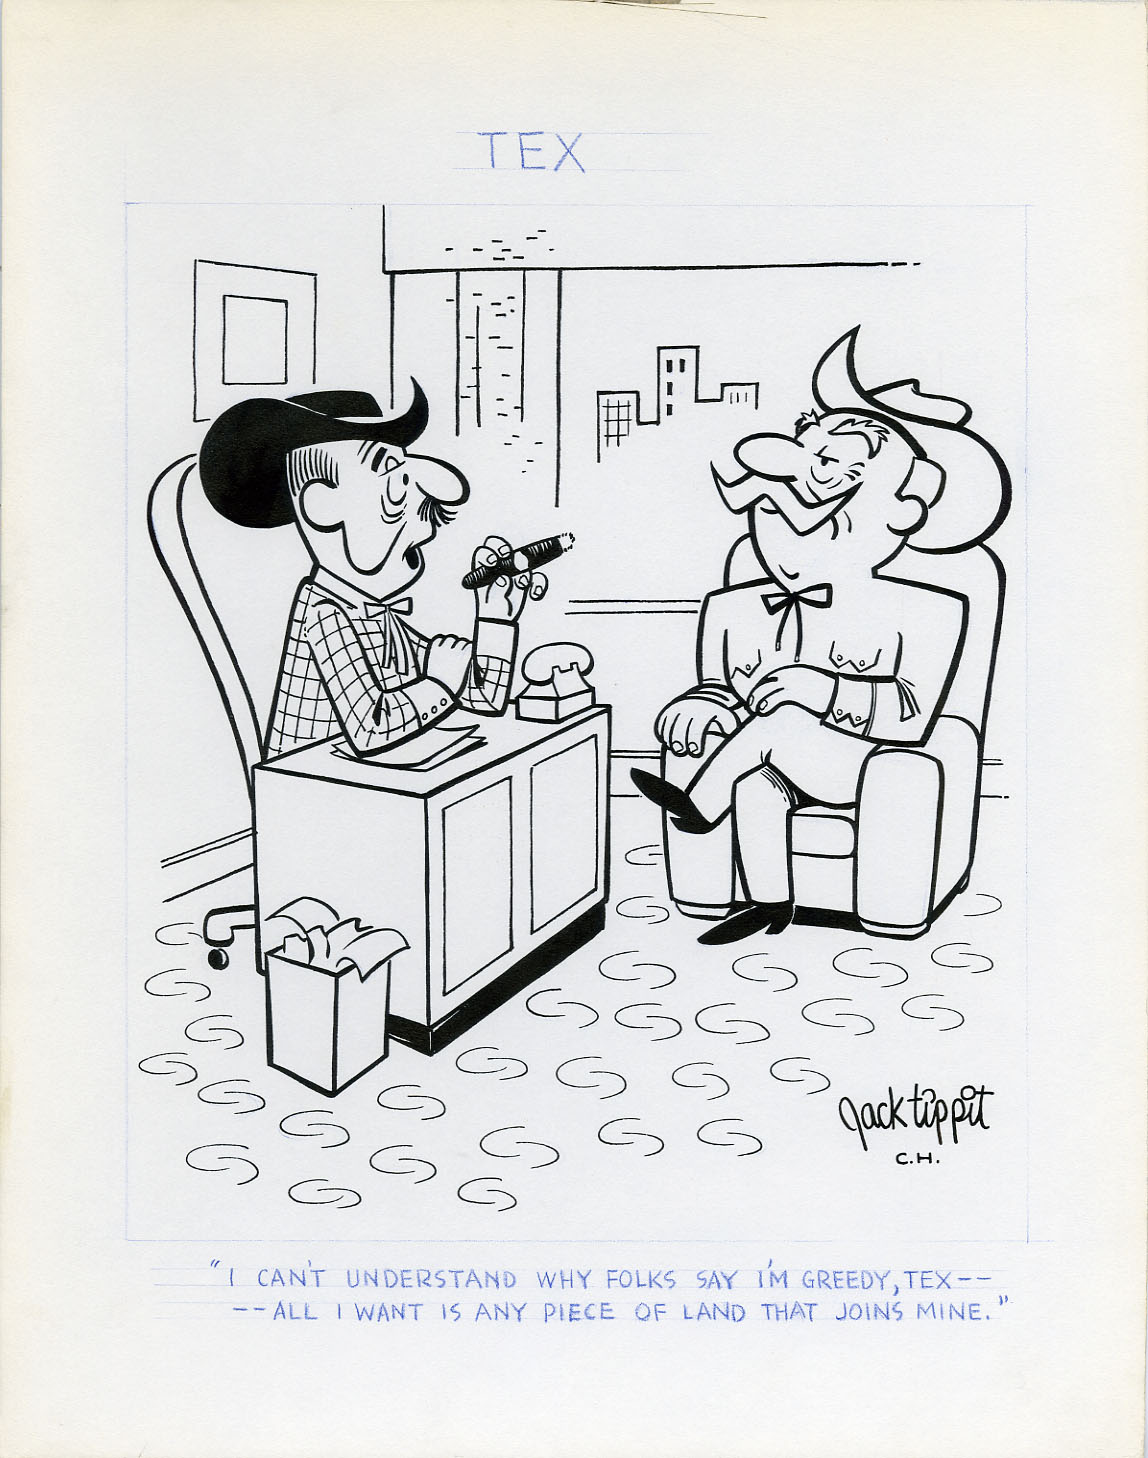 JACK TIPPIT - TEX DAILY STRIP 1970s GREEDY LANDOWNERS